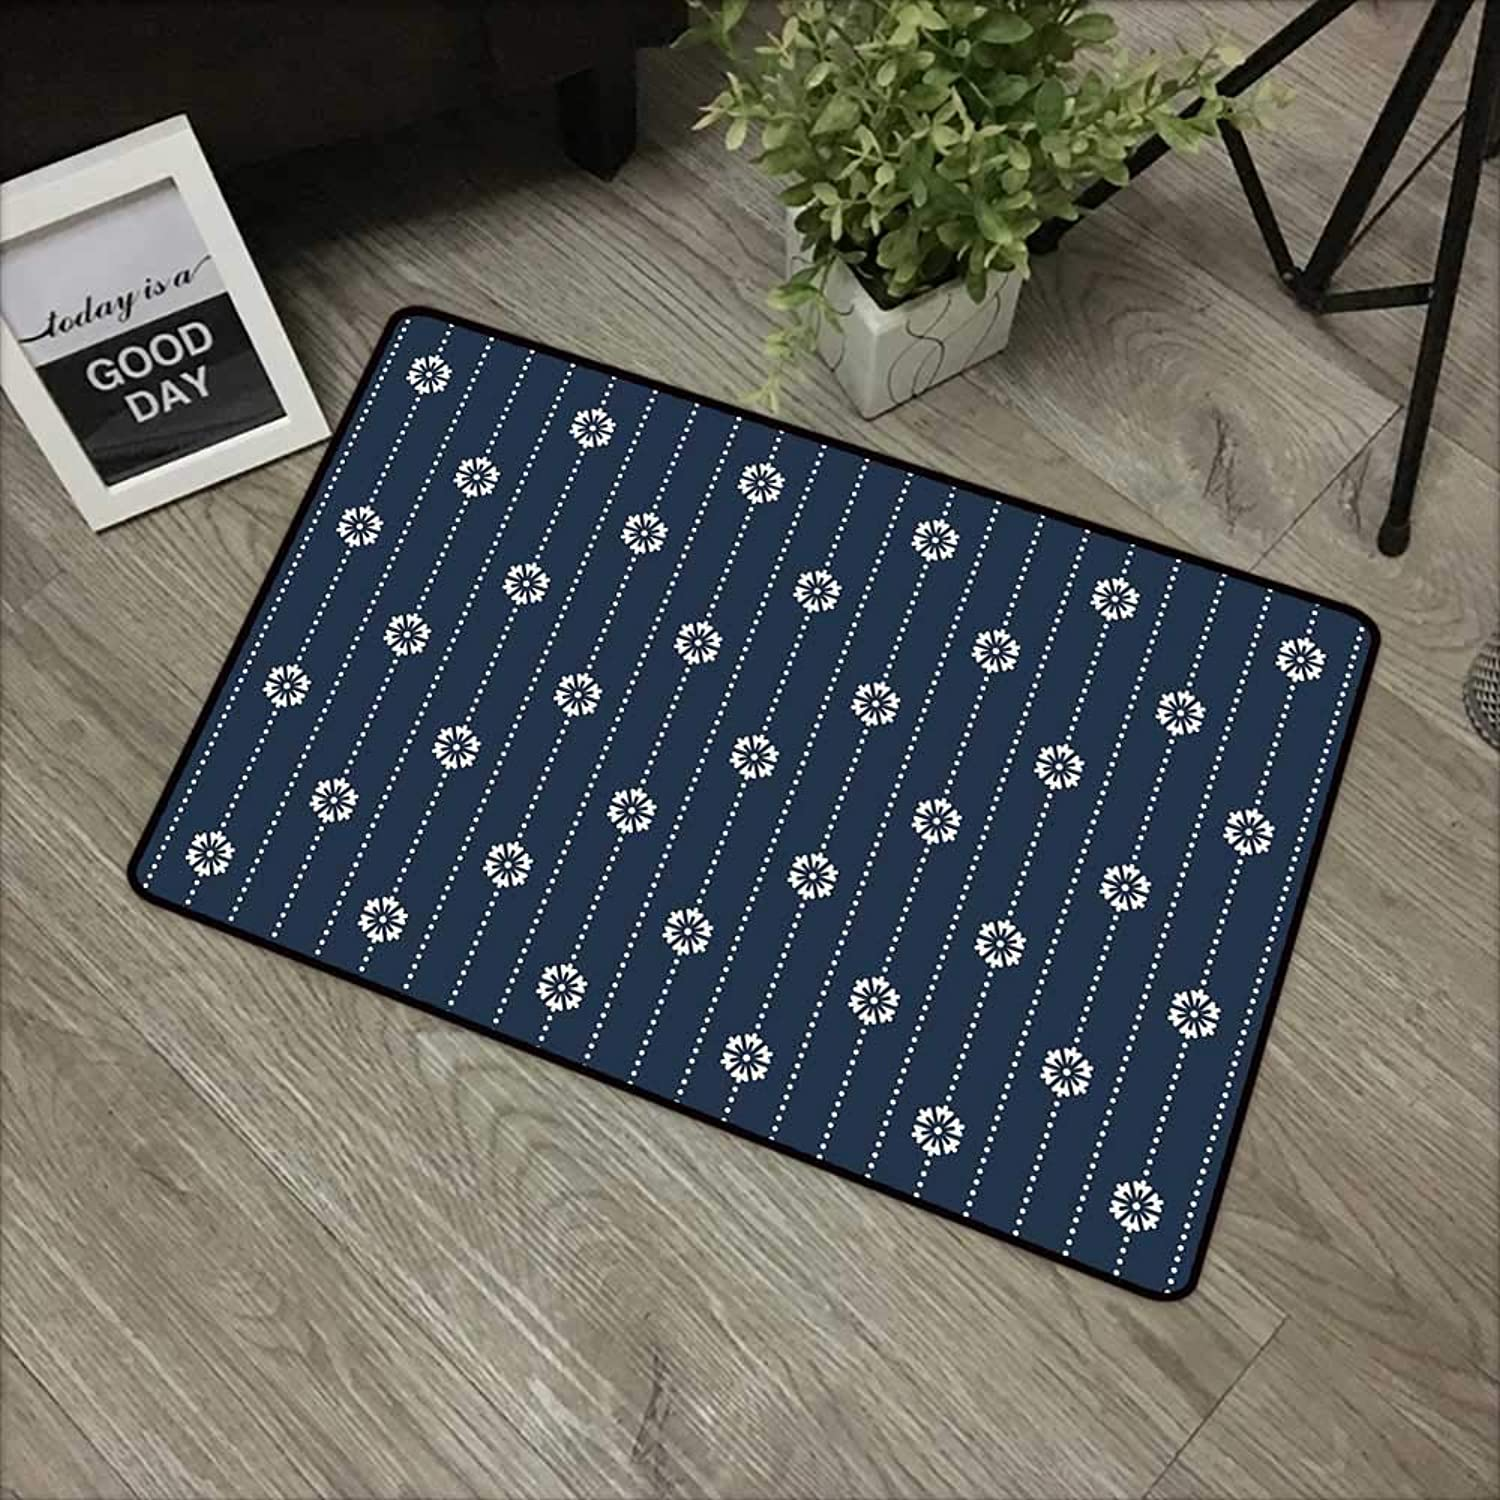 Door mat W35 x L59 INCH Geometric,Nature Flower Pattern with Connecting Dots Blossoming Floral Arrangement,Dark bluee Cream Non-Slip, with Non-Slip Backing,Non-Slip Door Mat Carpet